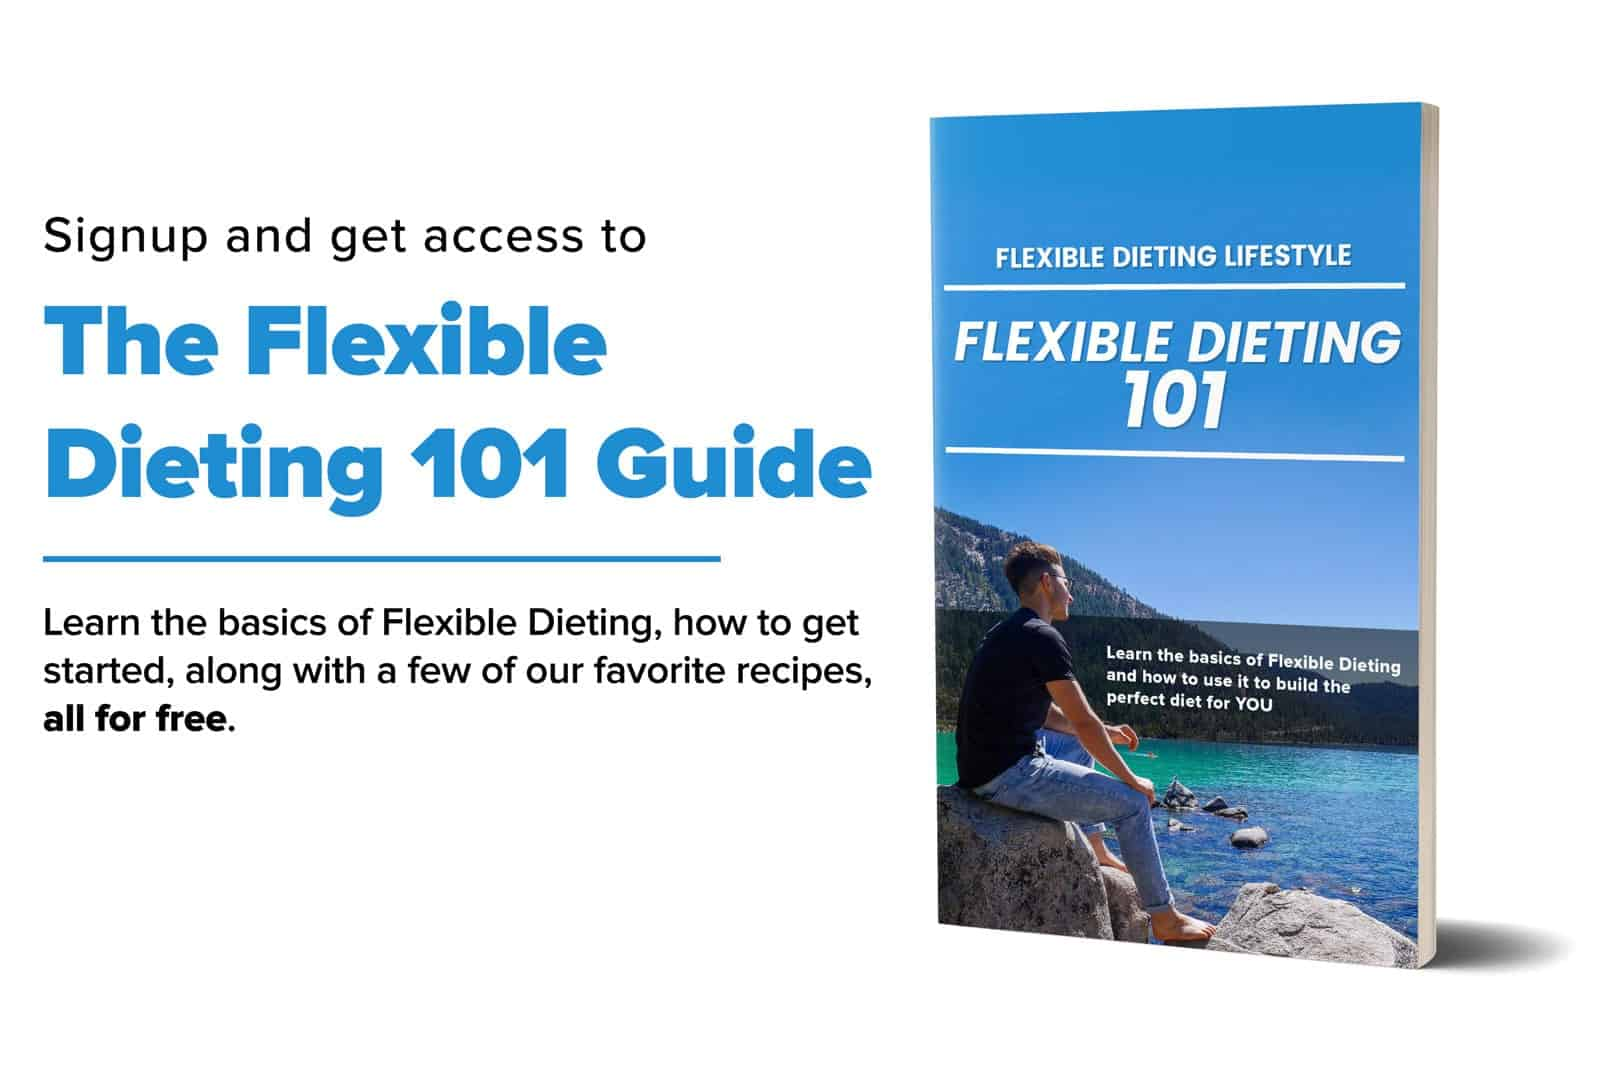 Flexible Dieting 101 Start Here The Flexible Dieting Lifestyle